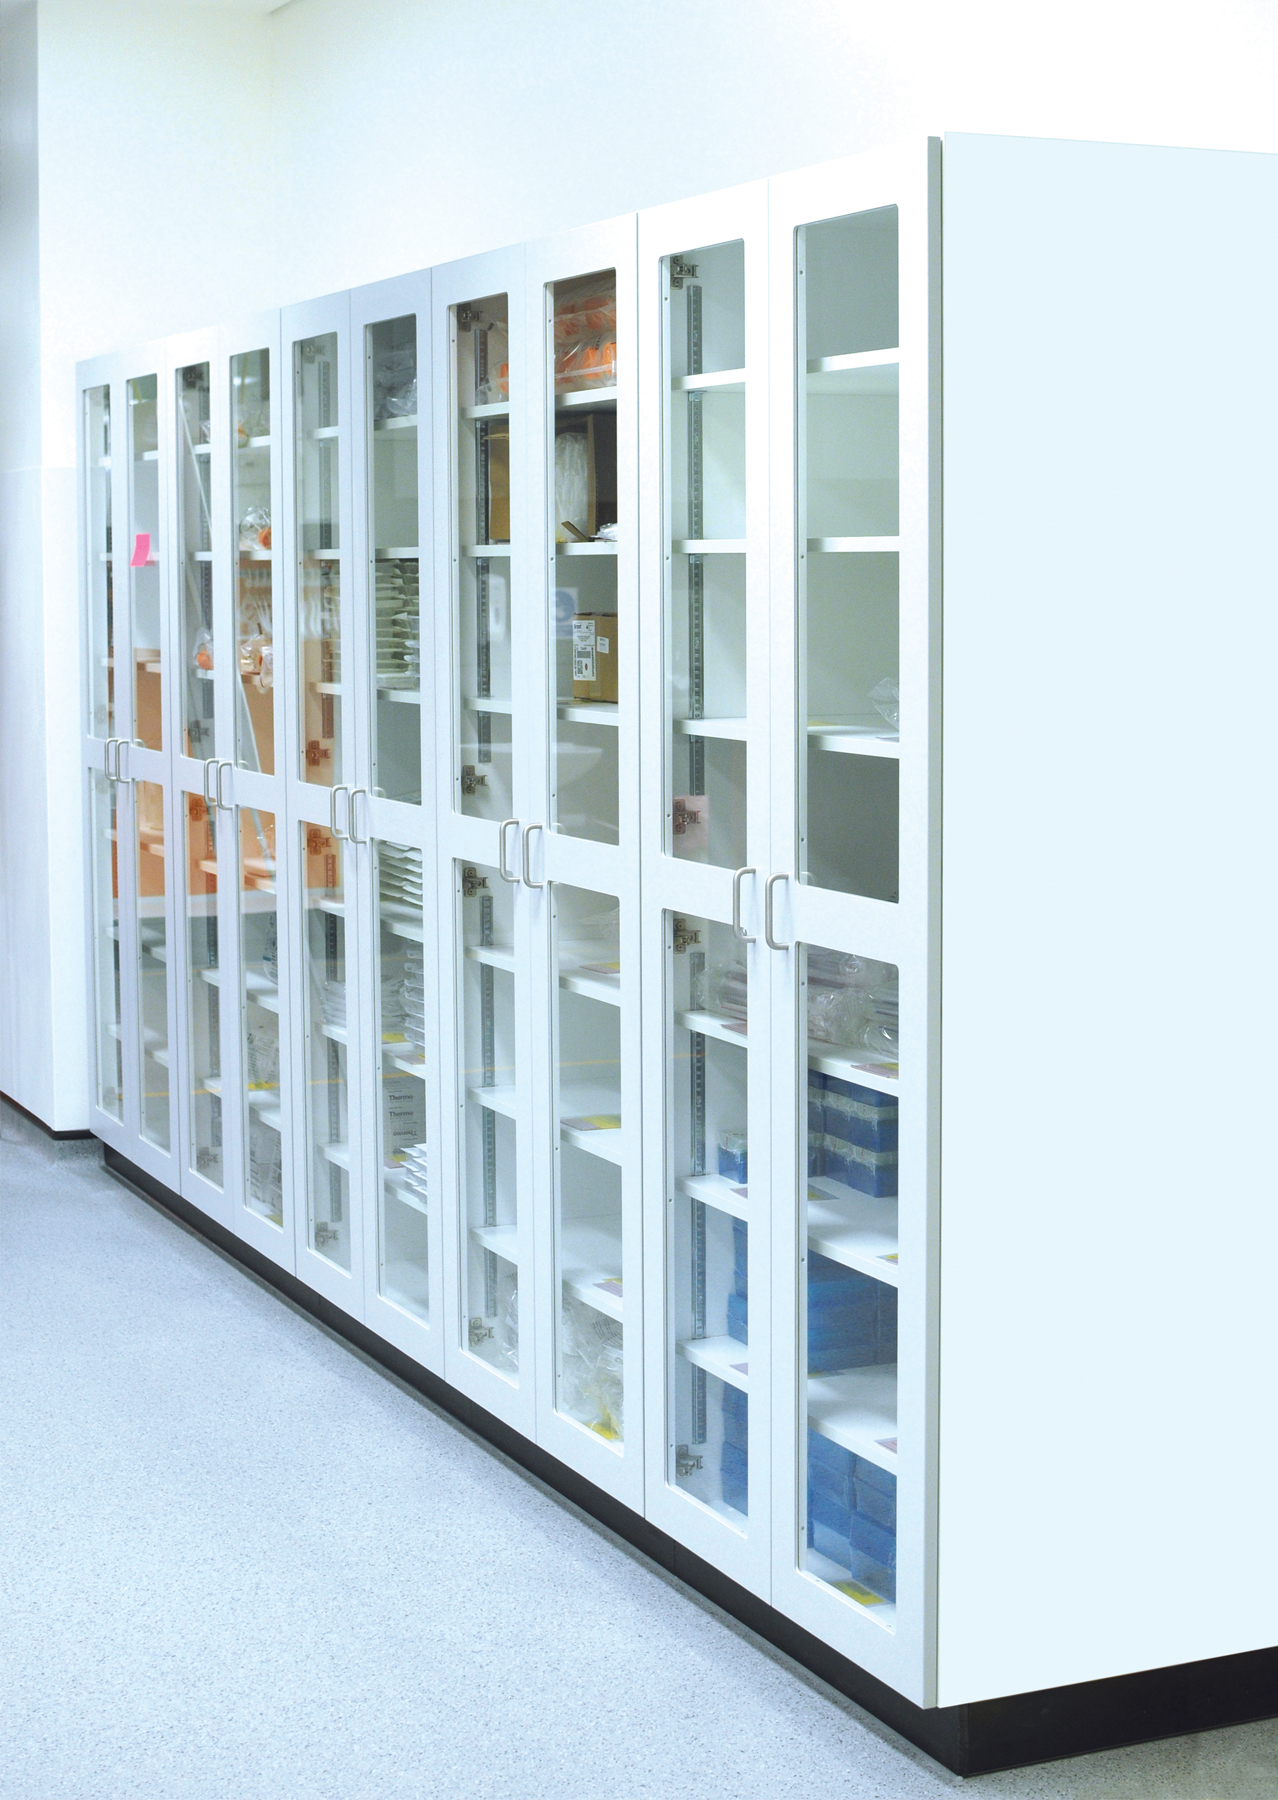 Fixed kanban consumable storage units